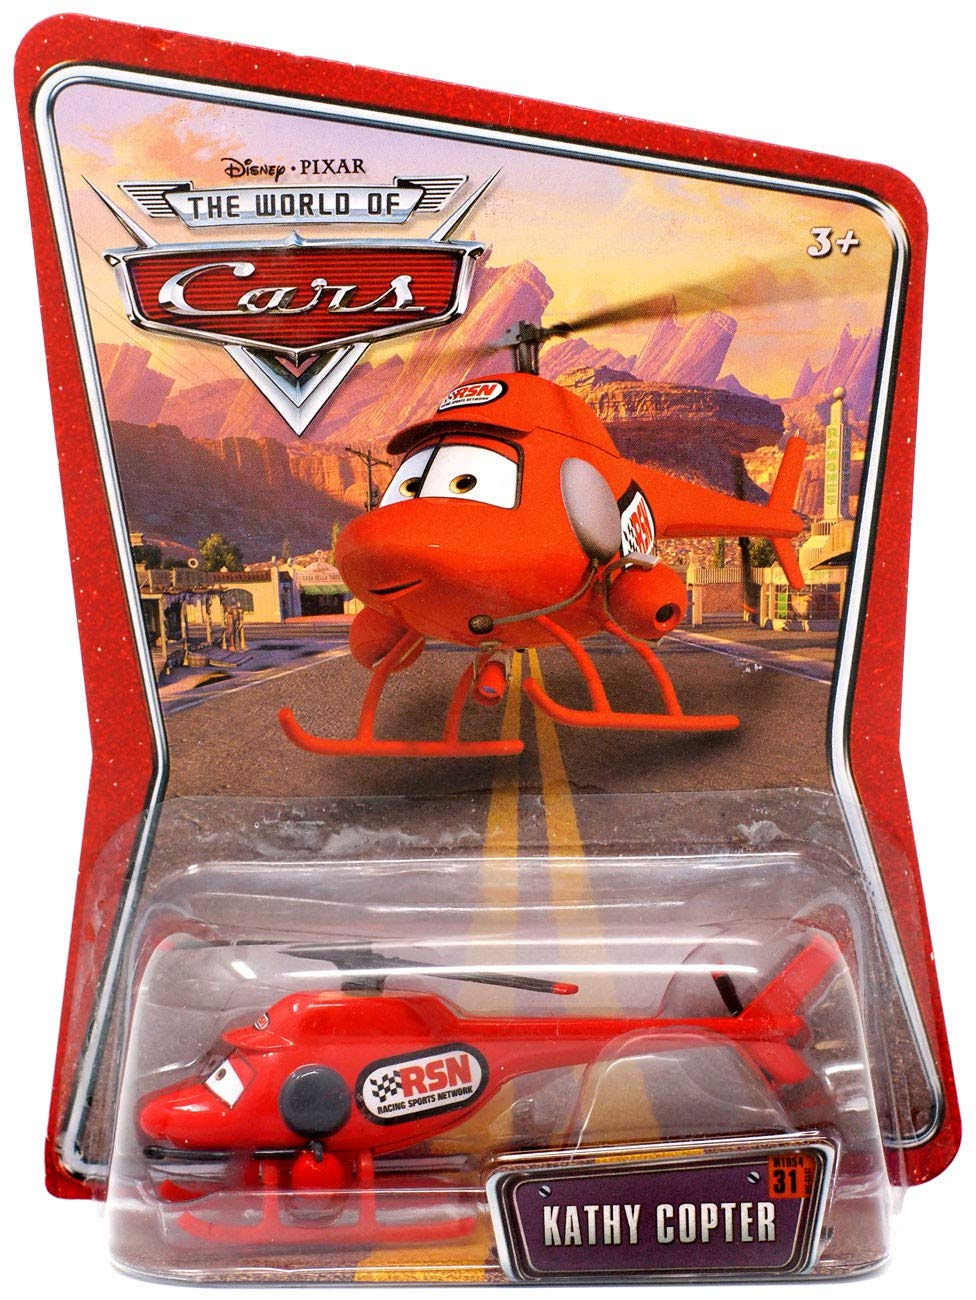 Disney Pixar Cars the World of Cars Kathy Copter  31